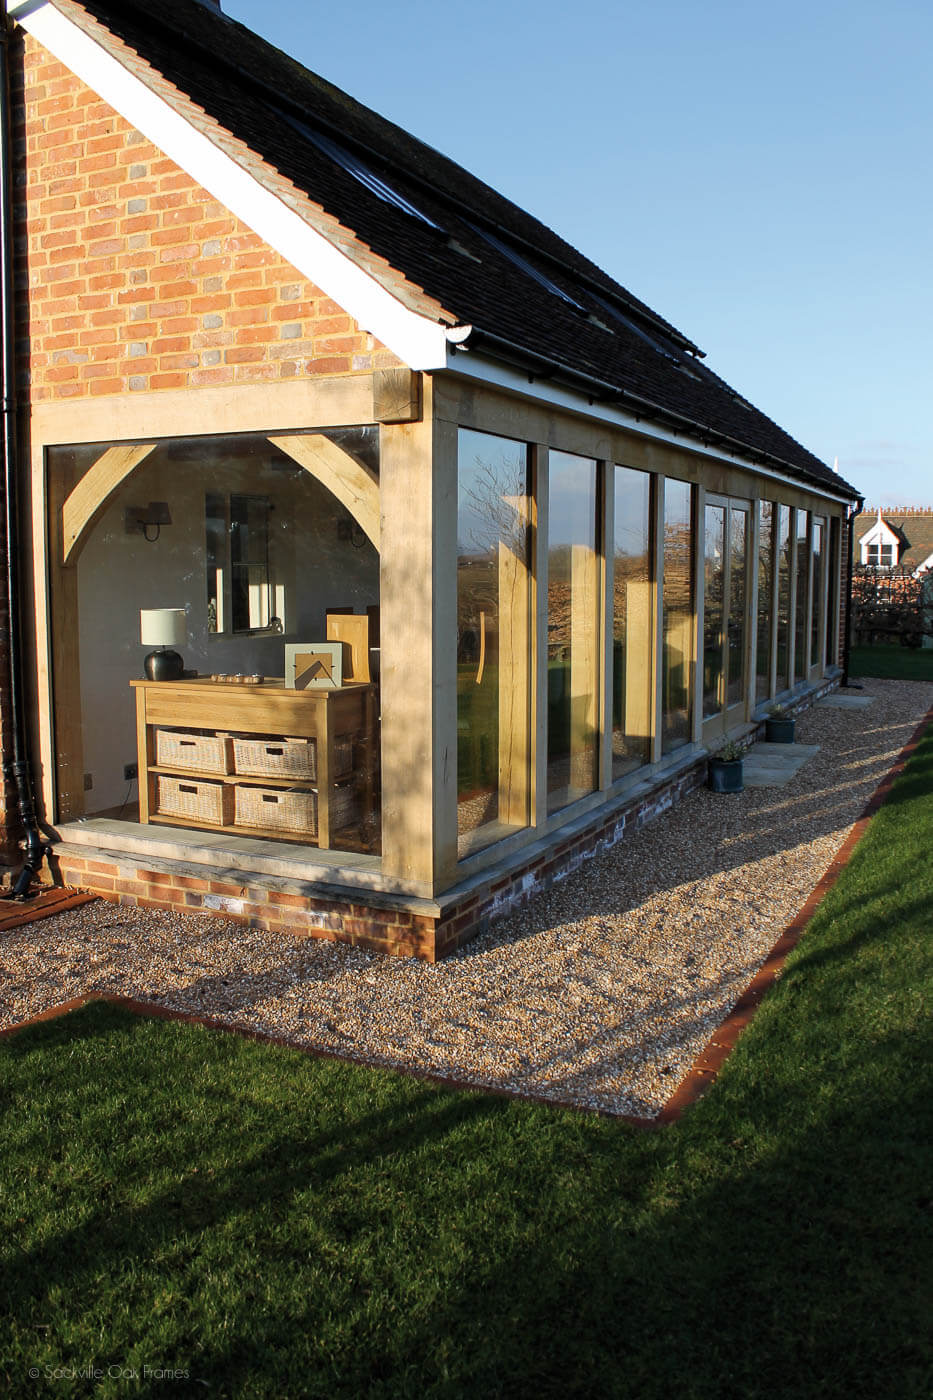 Sackville Oak Frames - Oak Framed Extension